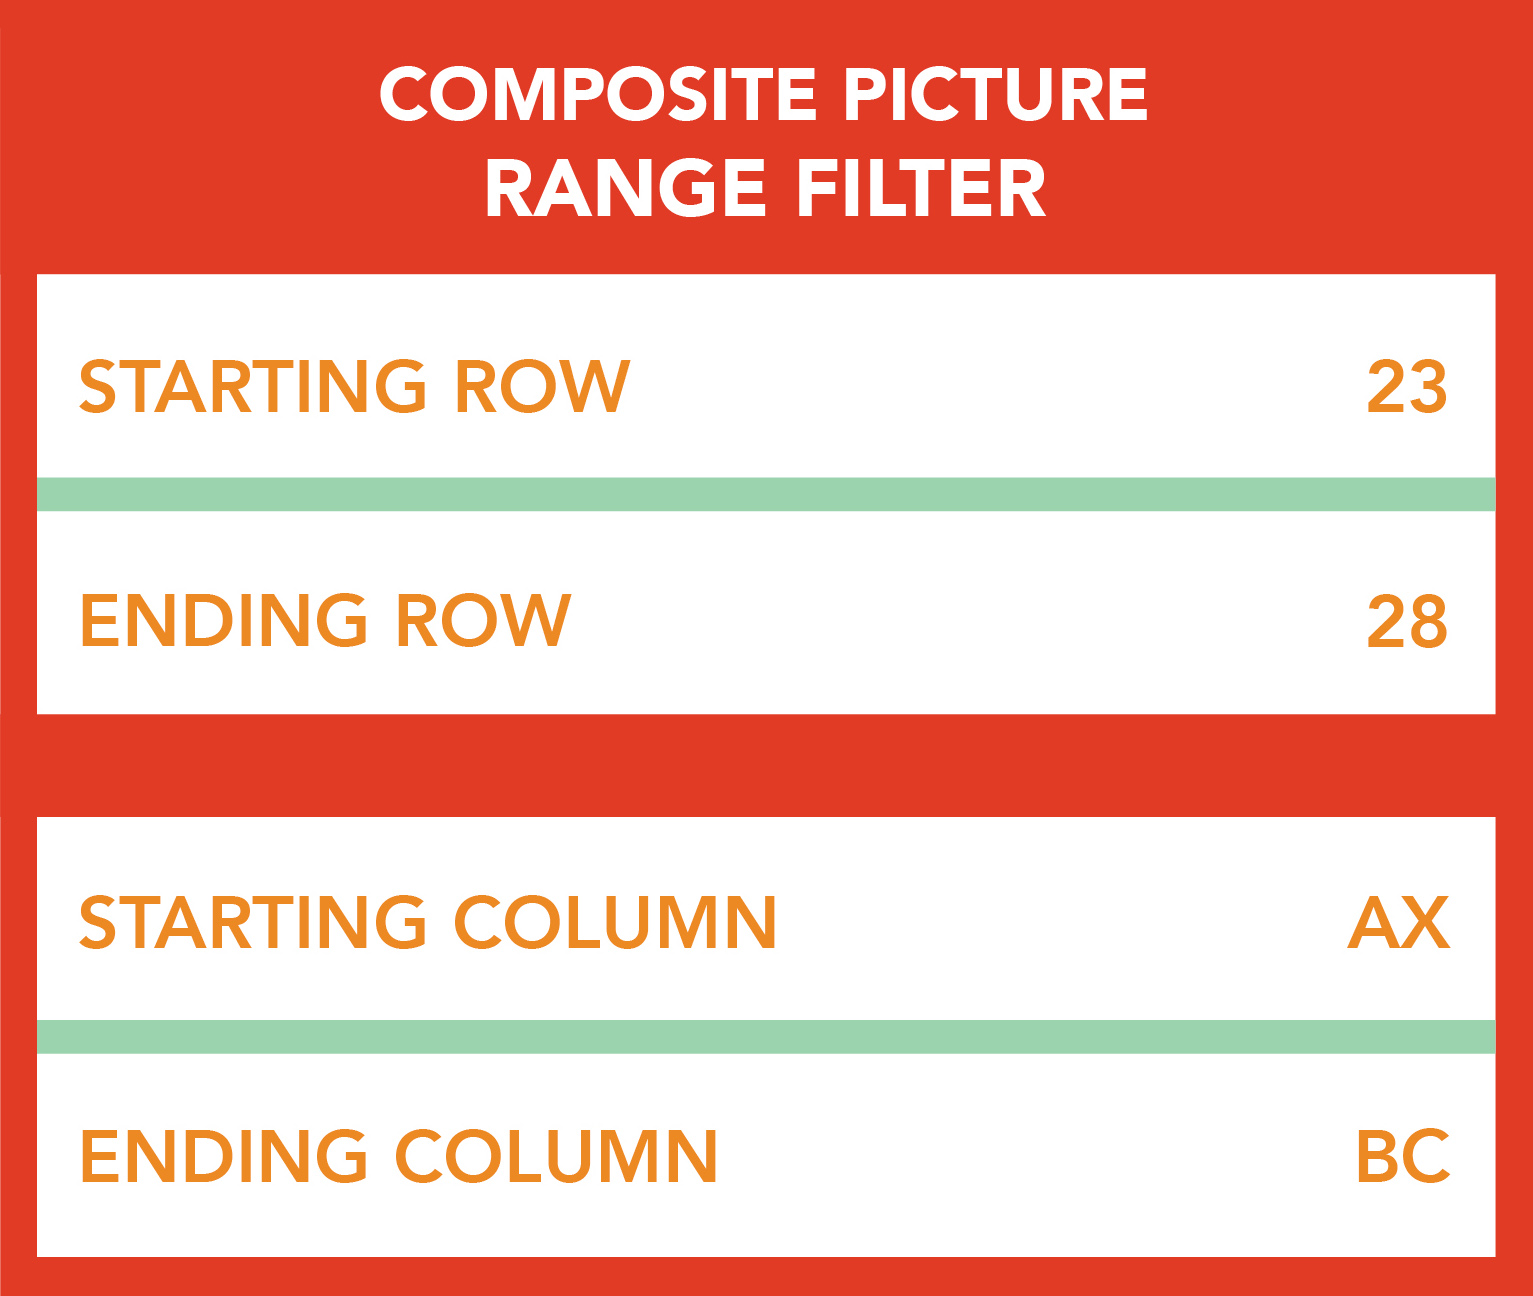 Filter tools allow user to select portion of floor for composite picture to reduce file size and processing time.